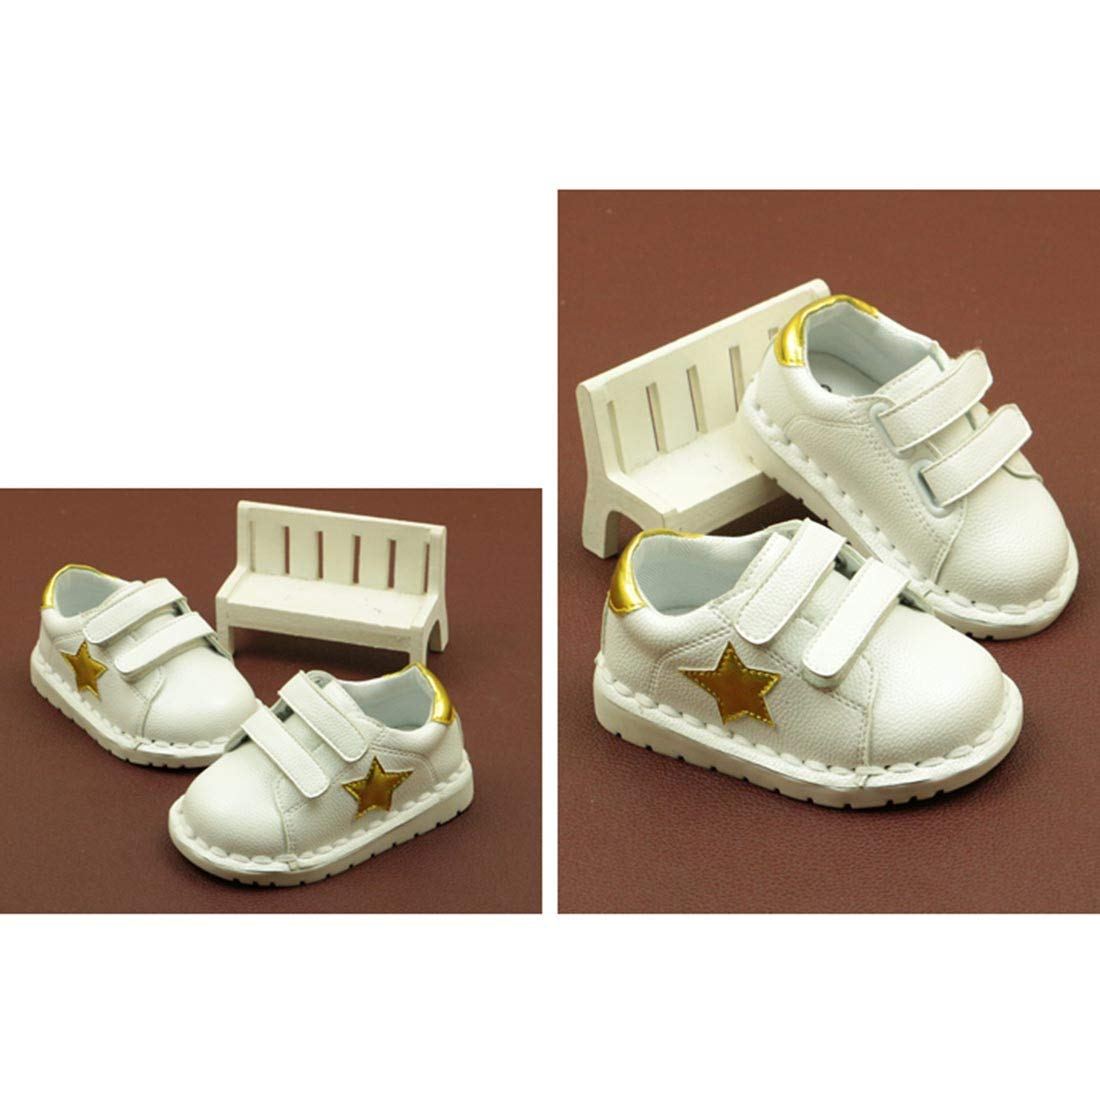 YIBLBOX Infant Baby Boys Girls Slip On Sneakers Toddler Kids Casual Sports Outdoor Running Shoes